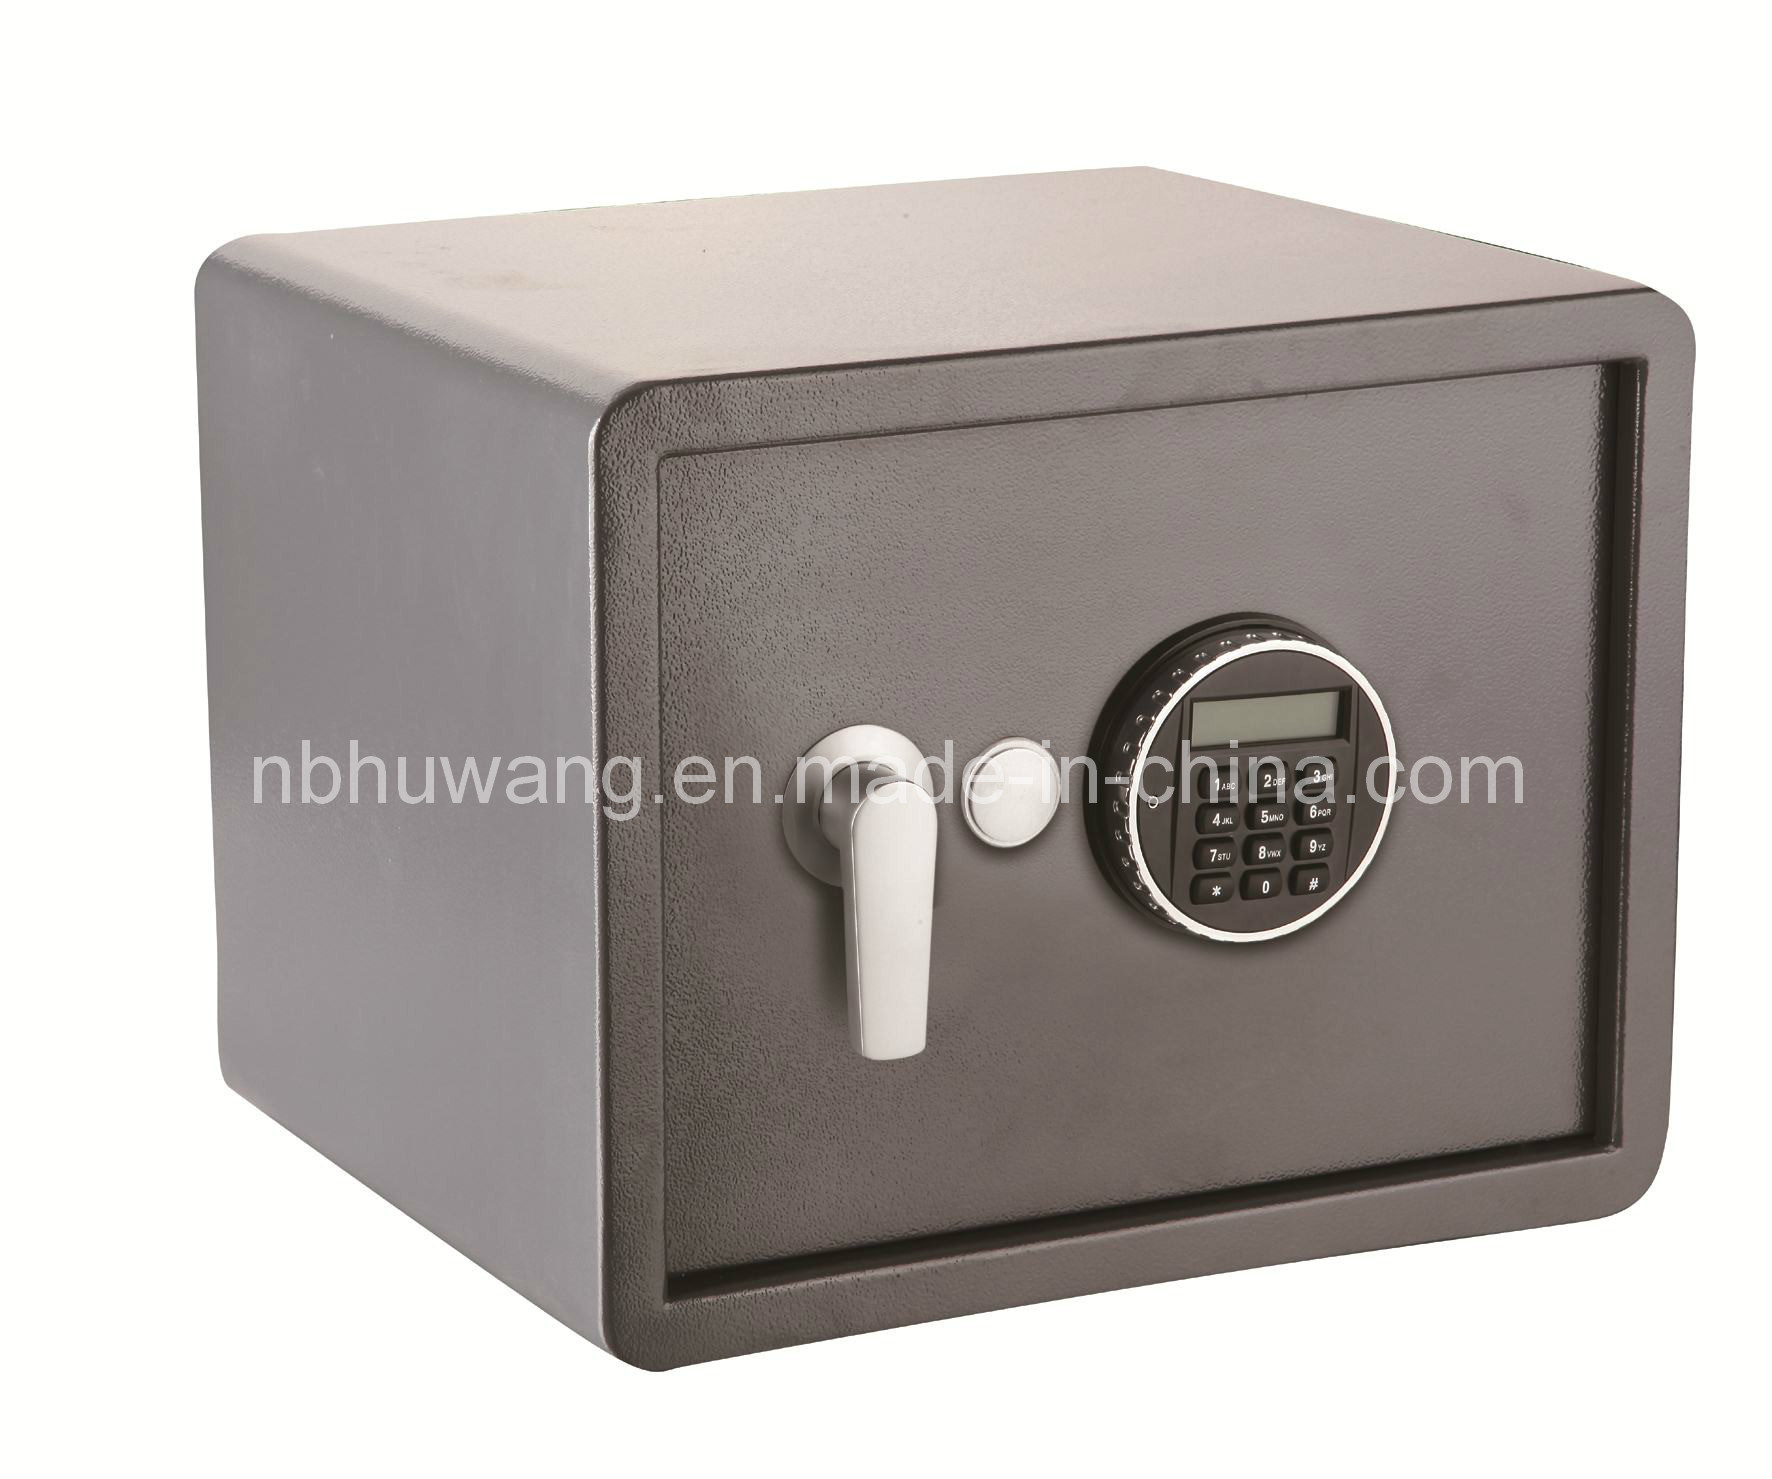 Electronic Home Safe Digital Safe Box